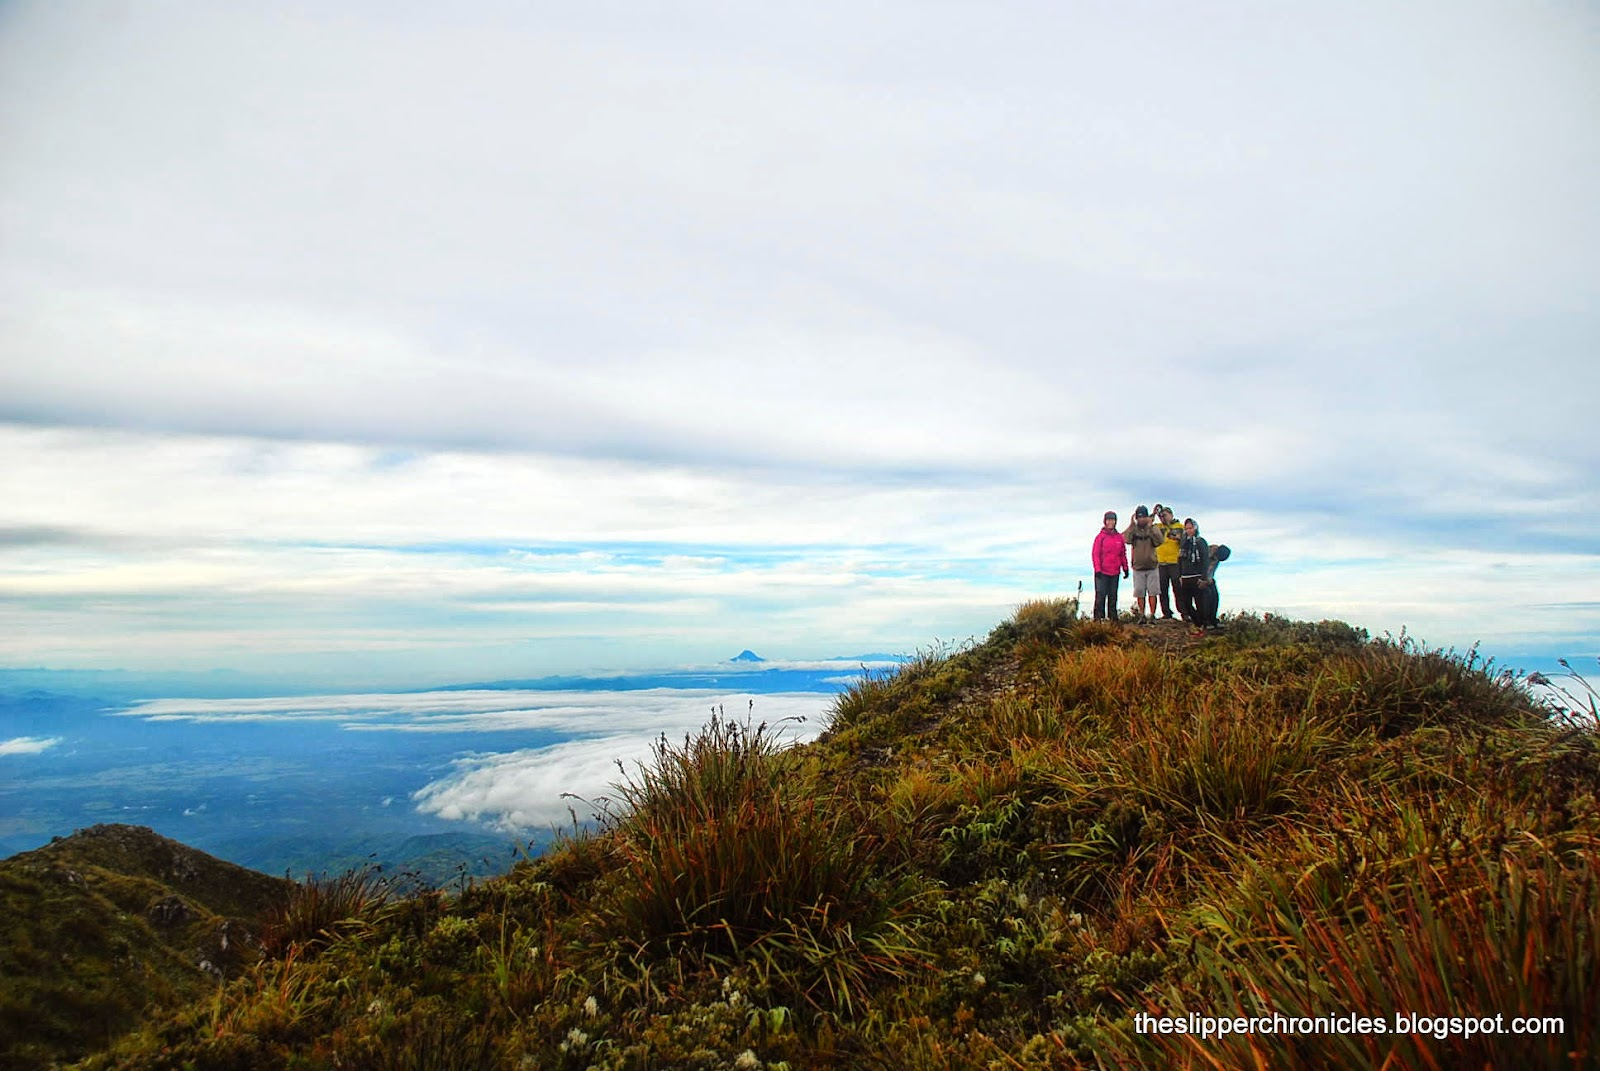 Mount Apo Peak